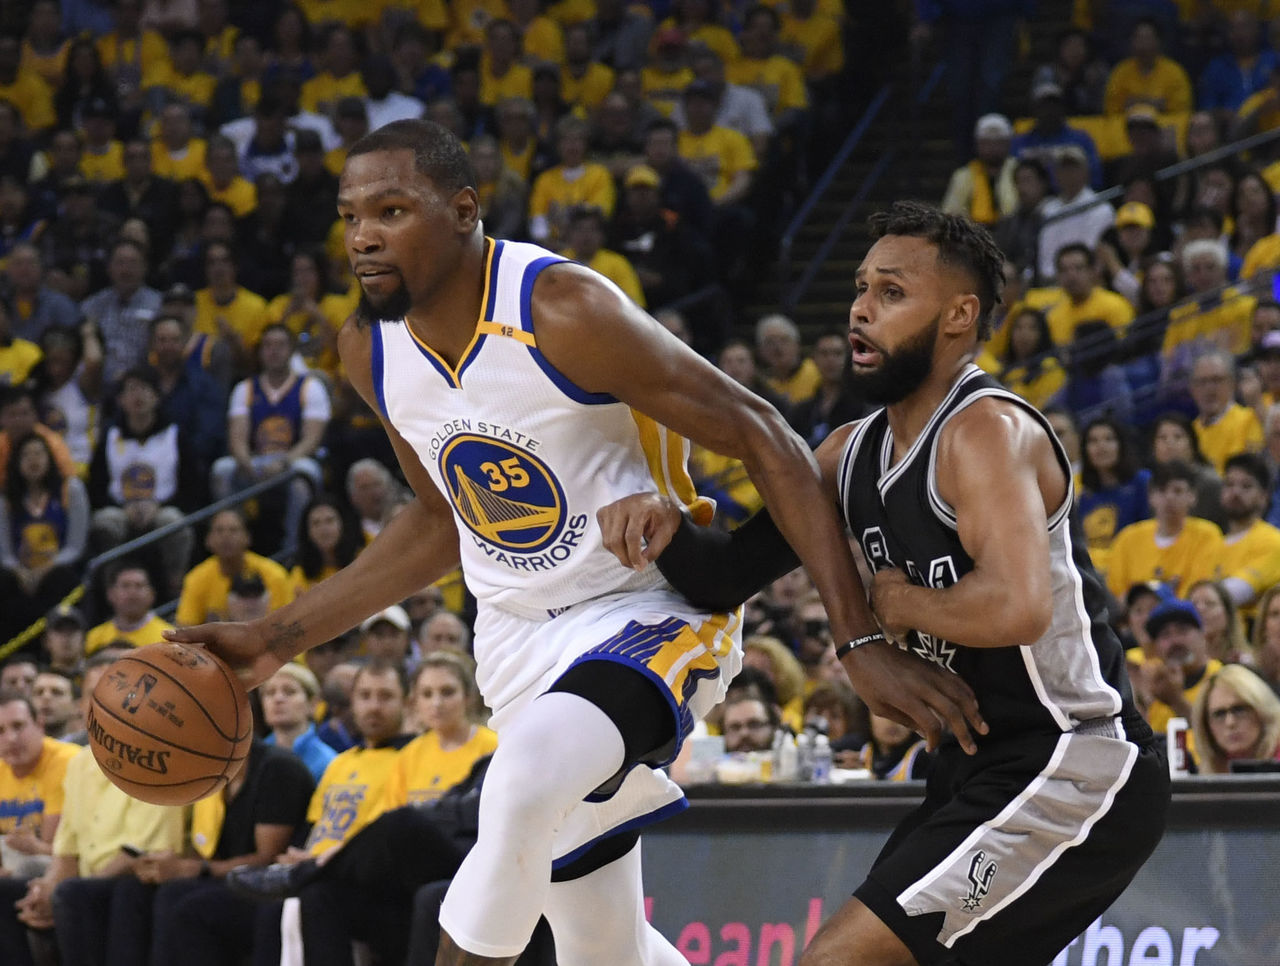 Cropped 2017 05 17t021328z 2130675854 nocid rtrmadp 3 nba playoffs san antonio spurs at golden state warriors